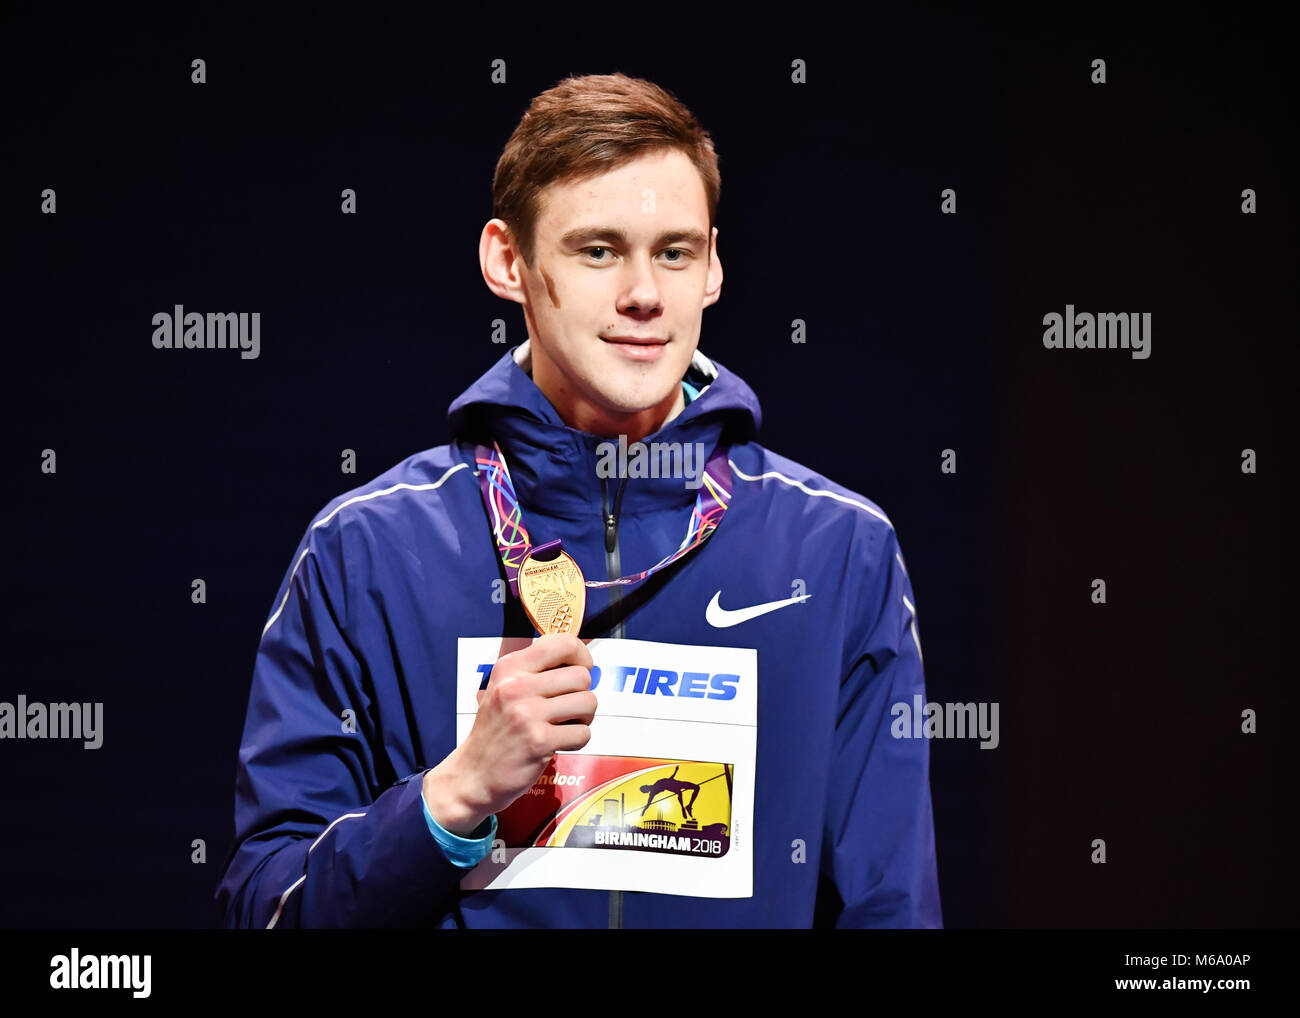 Birmingham, UK. 1st March, 2018. Nanil Lysenko shows his goal medal at the Winner's Presentation during IAAF - Stock Image